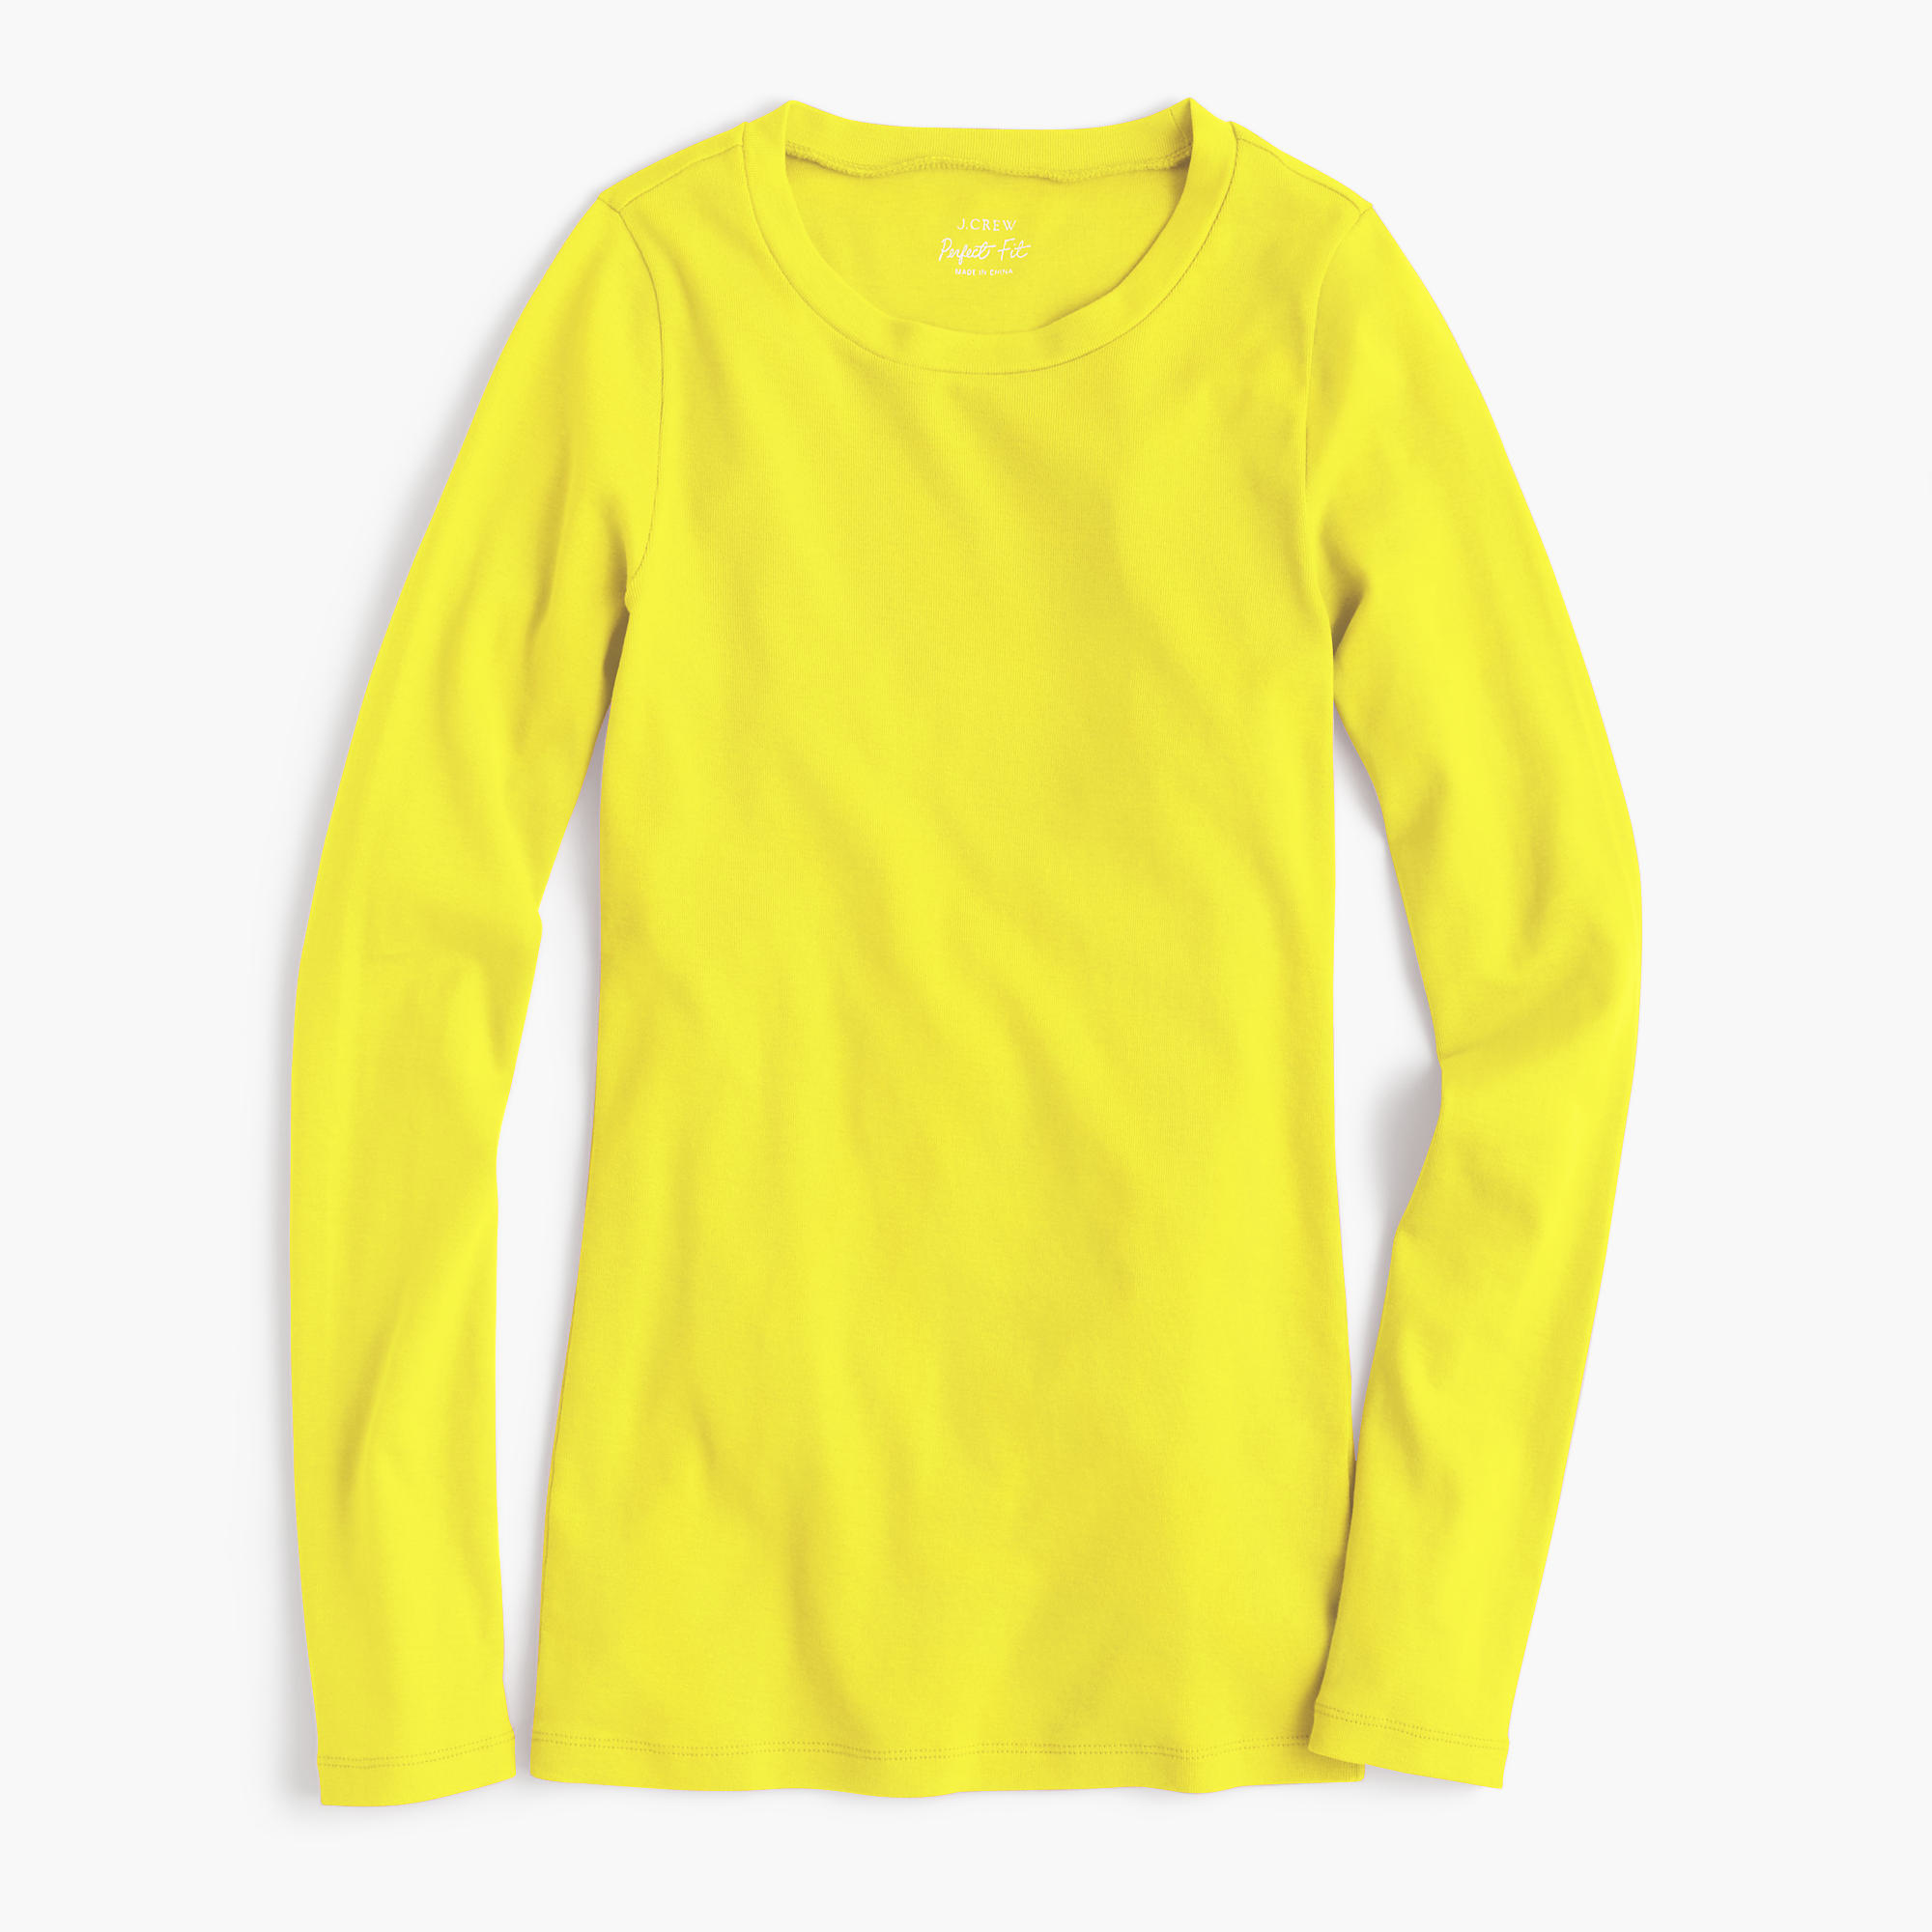 Long Sleeve Yellow Shirt Artee Shirt